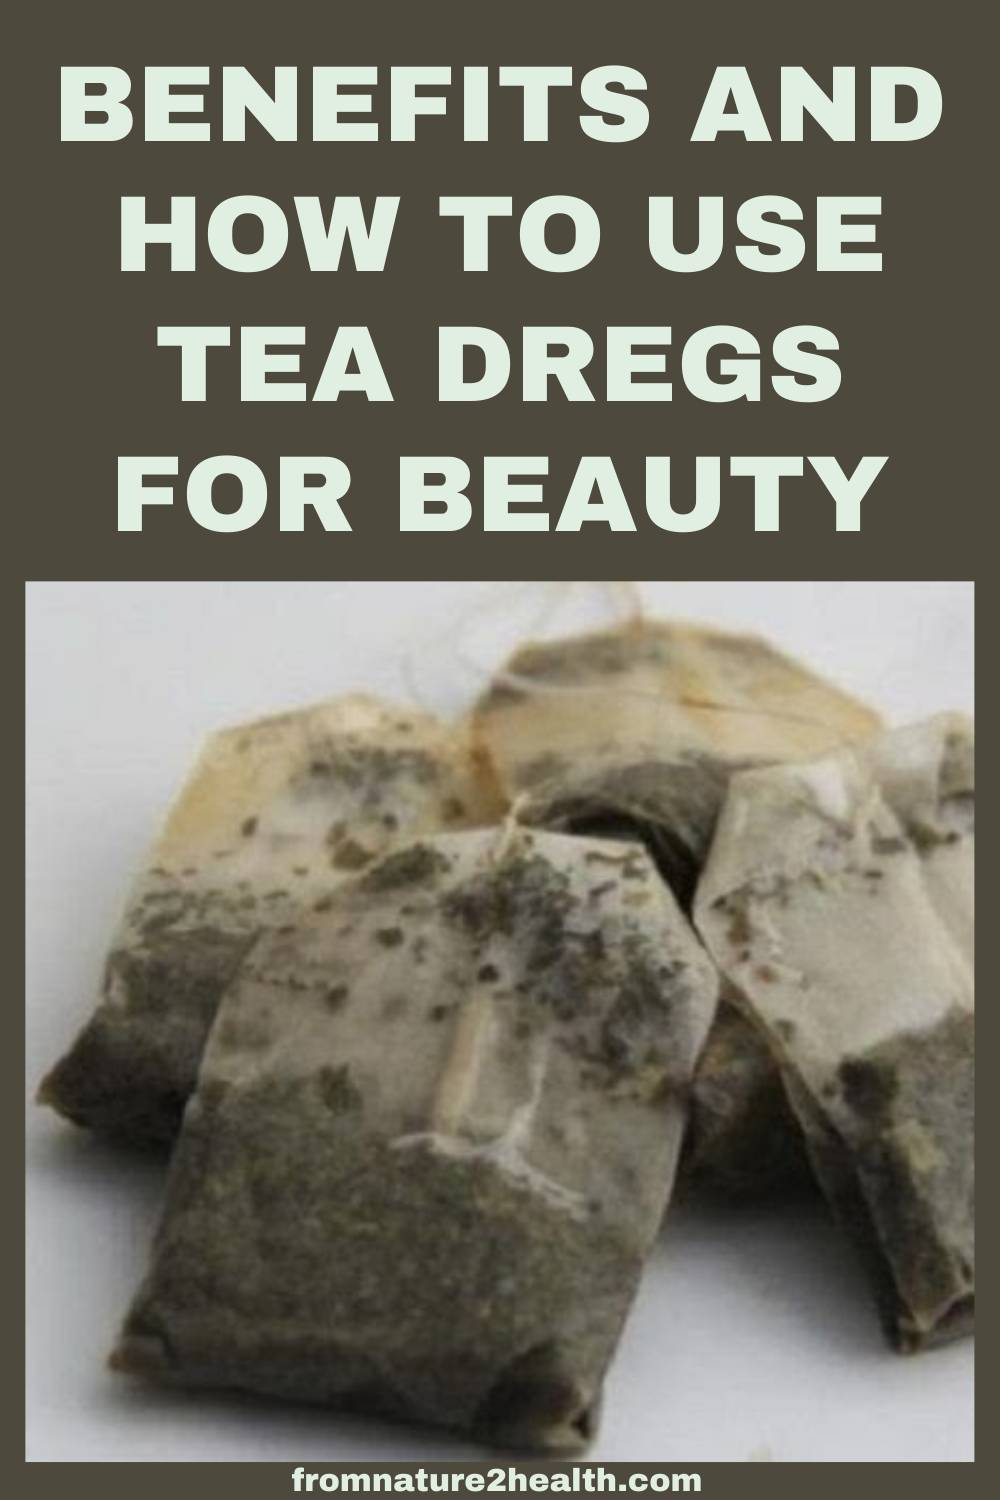 Benefits and How to Use Tea Dregs for Beauty